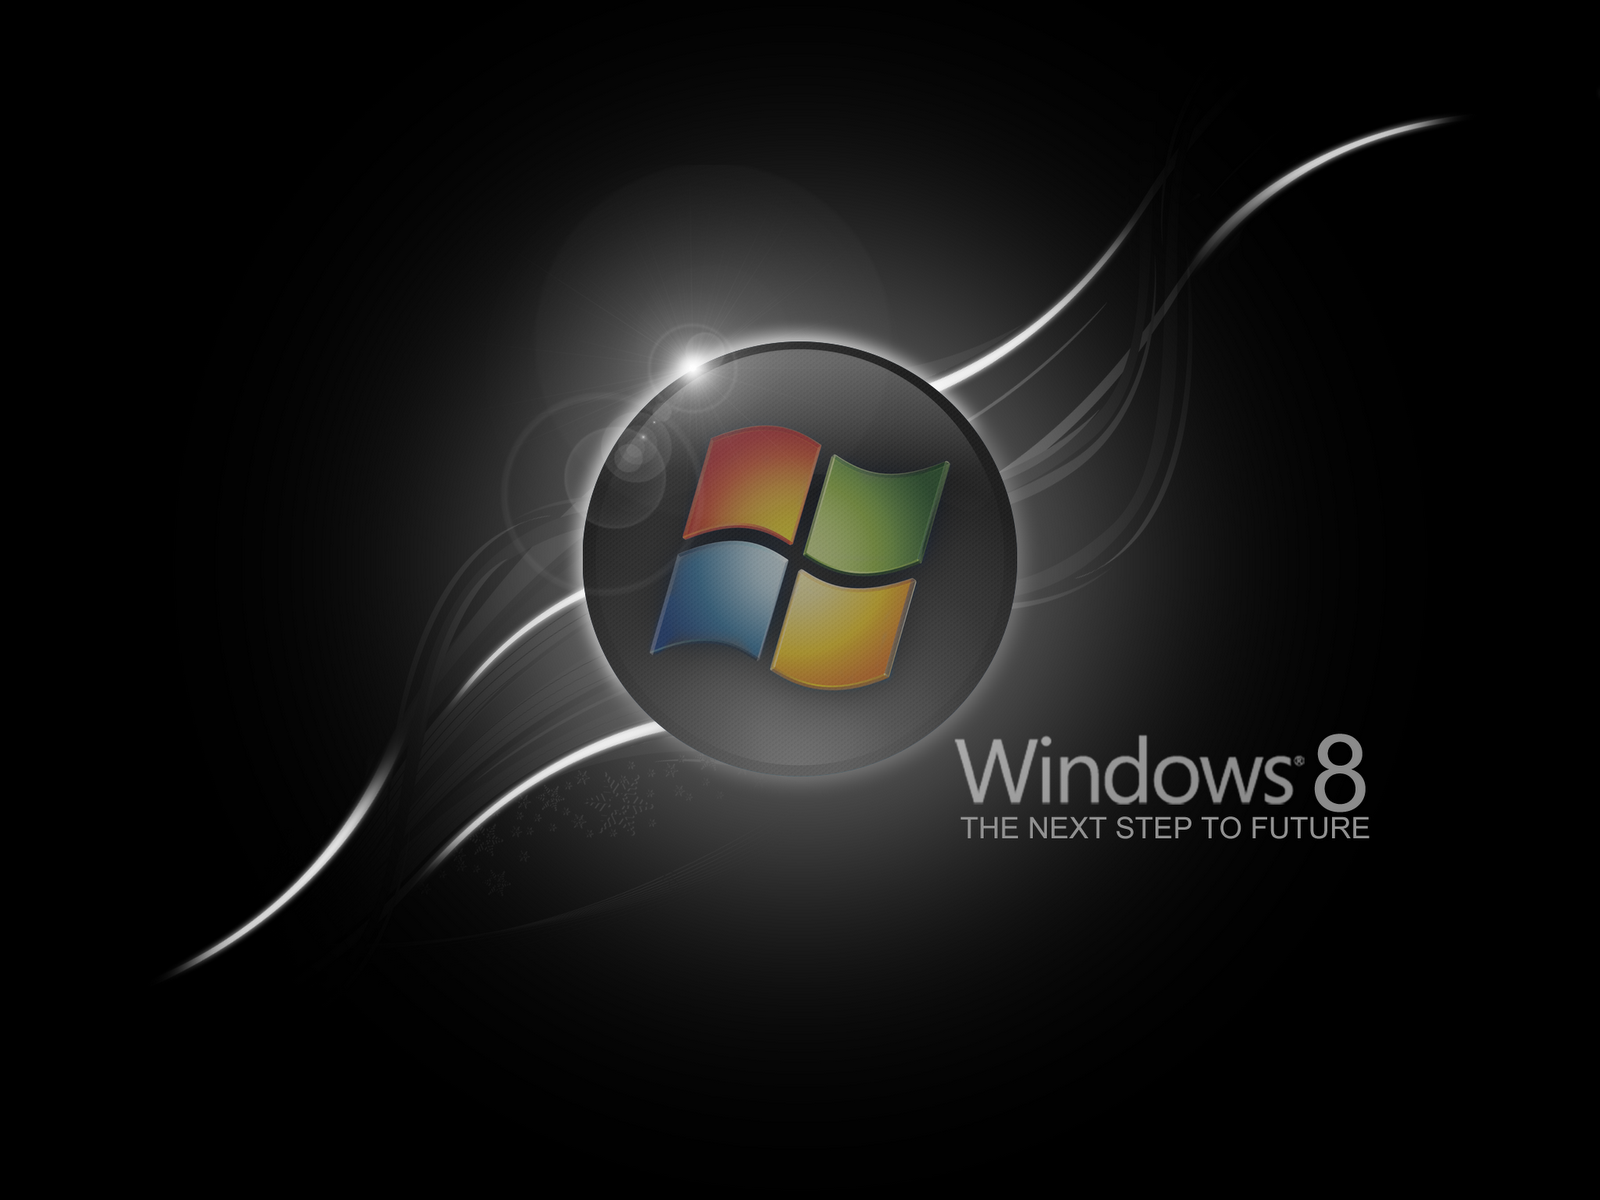 window 8 wallpaper | windows wallpaper free | windows 8 wallpaper hd